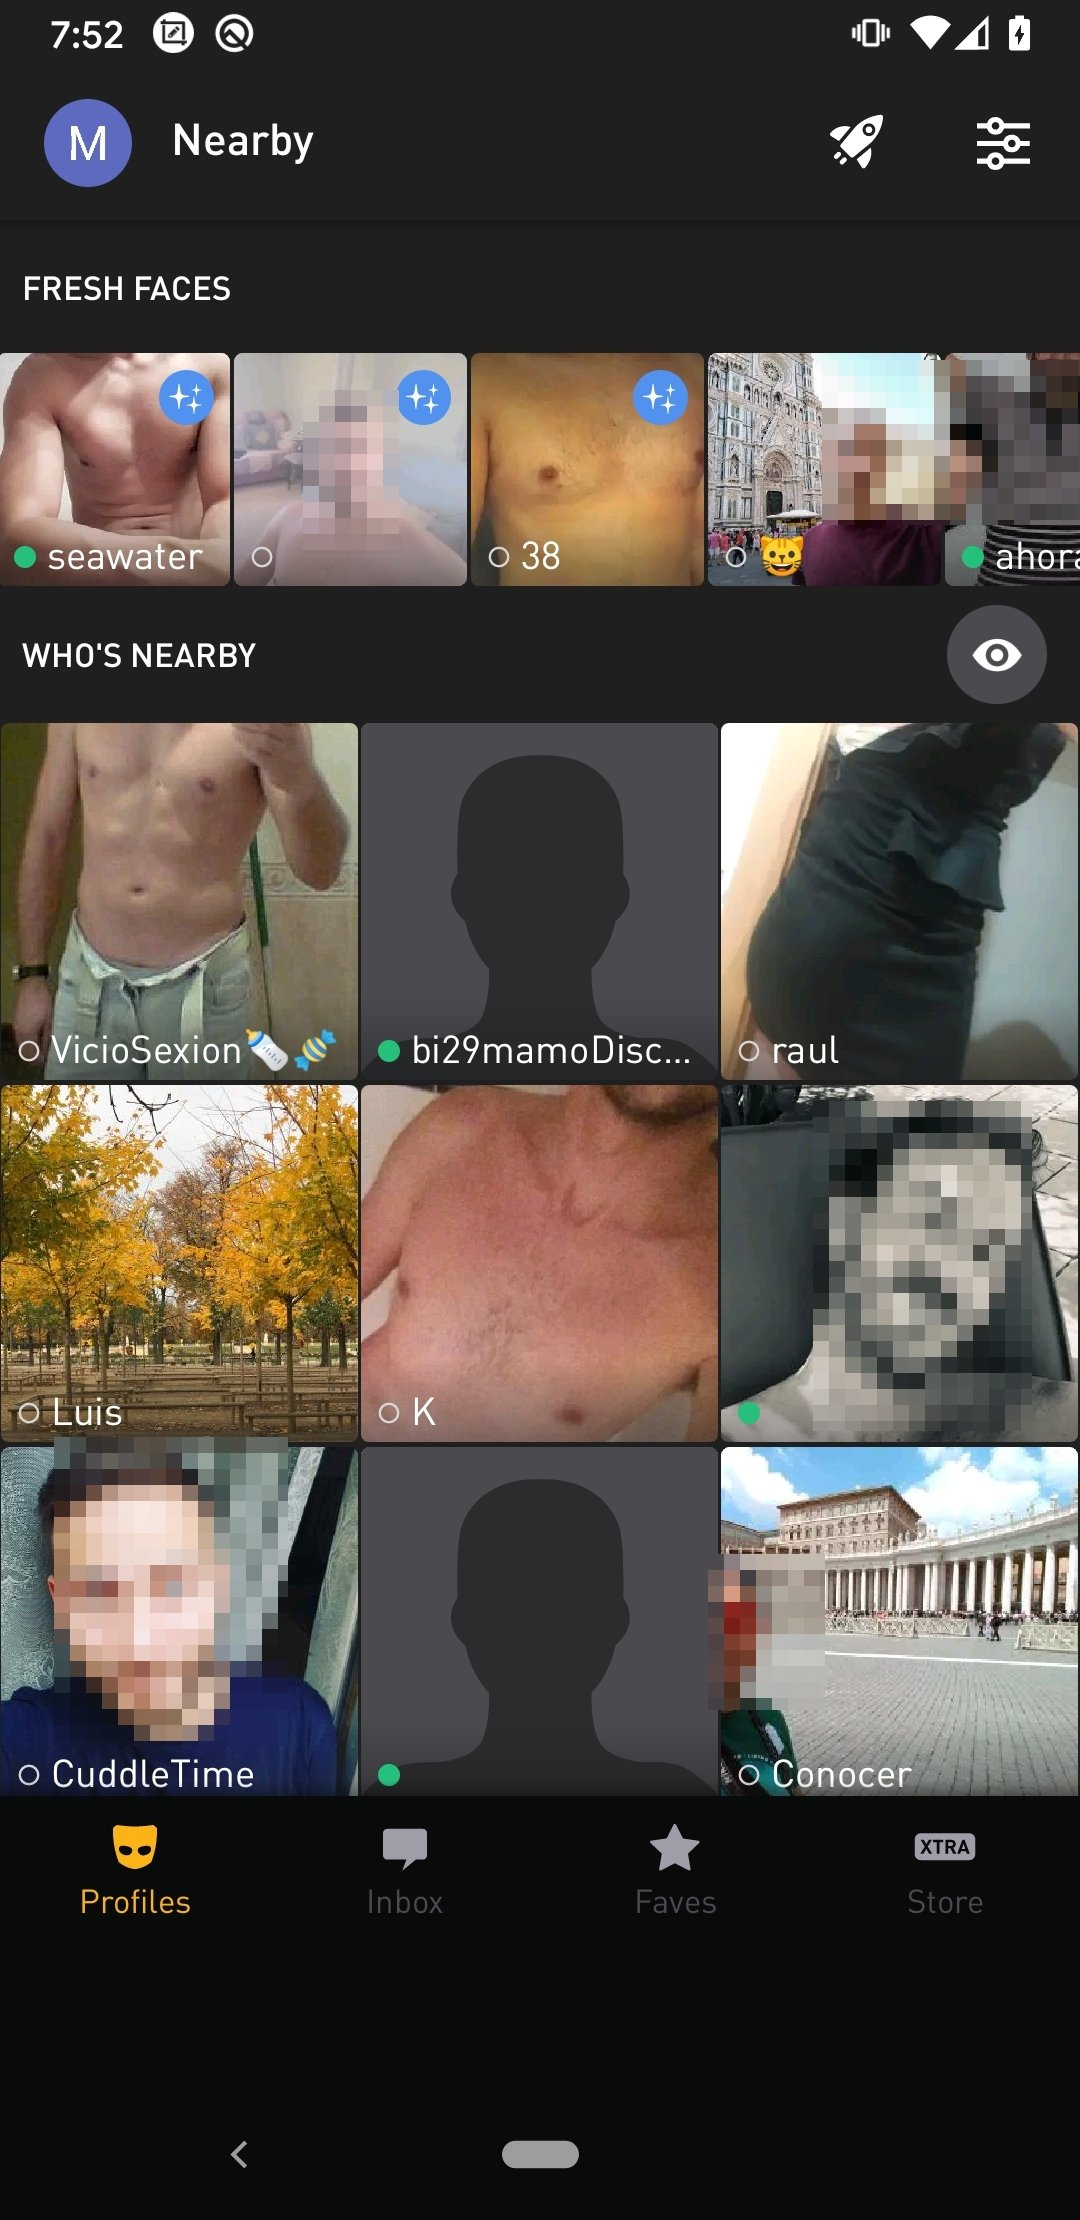 Top gay rencontres apps